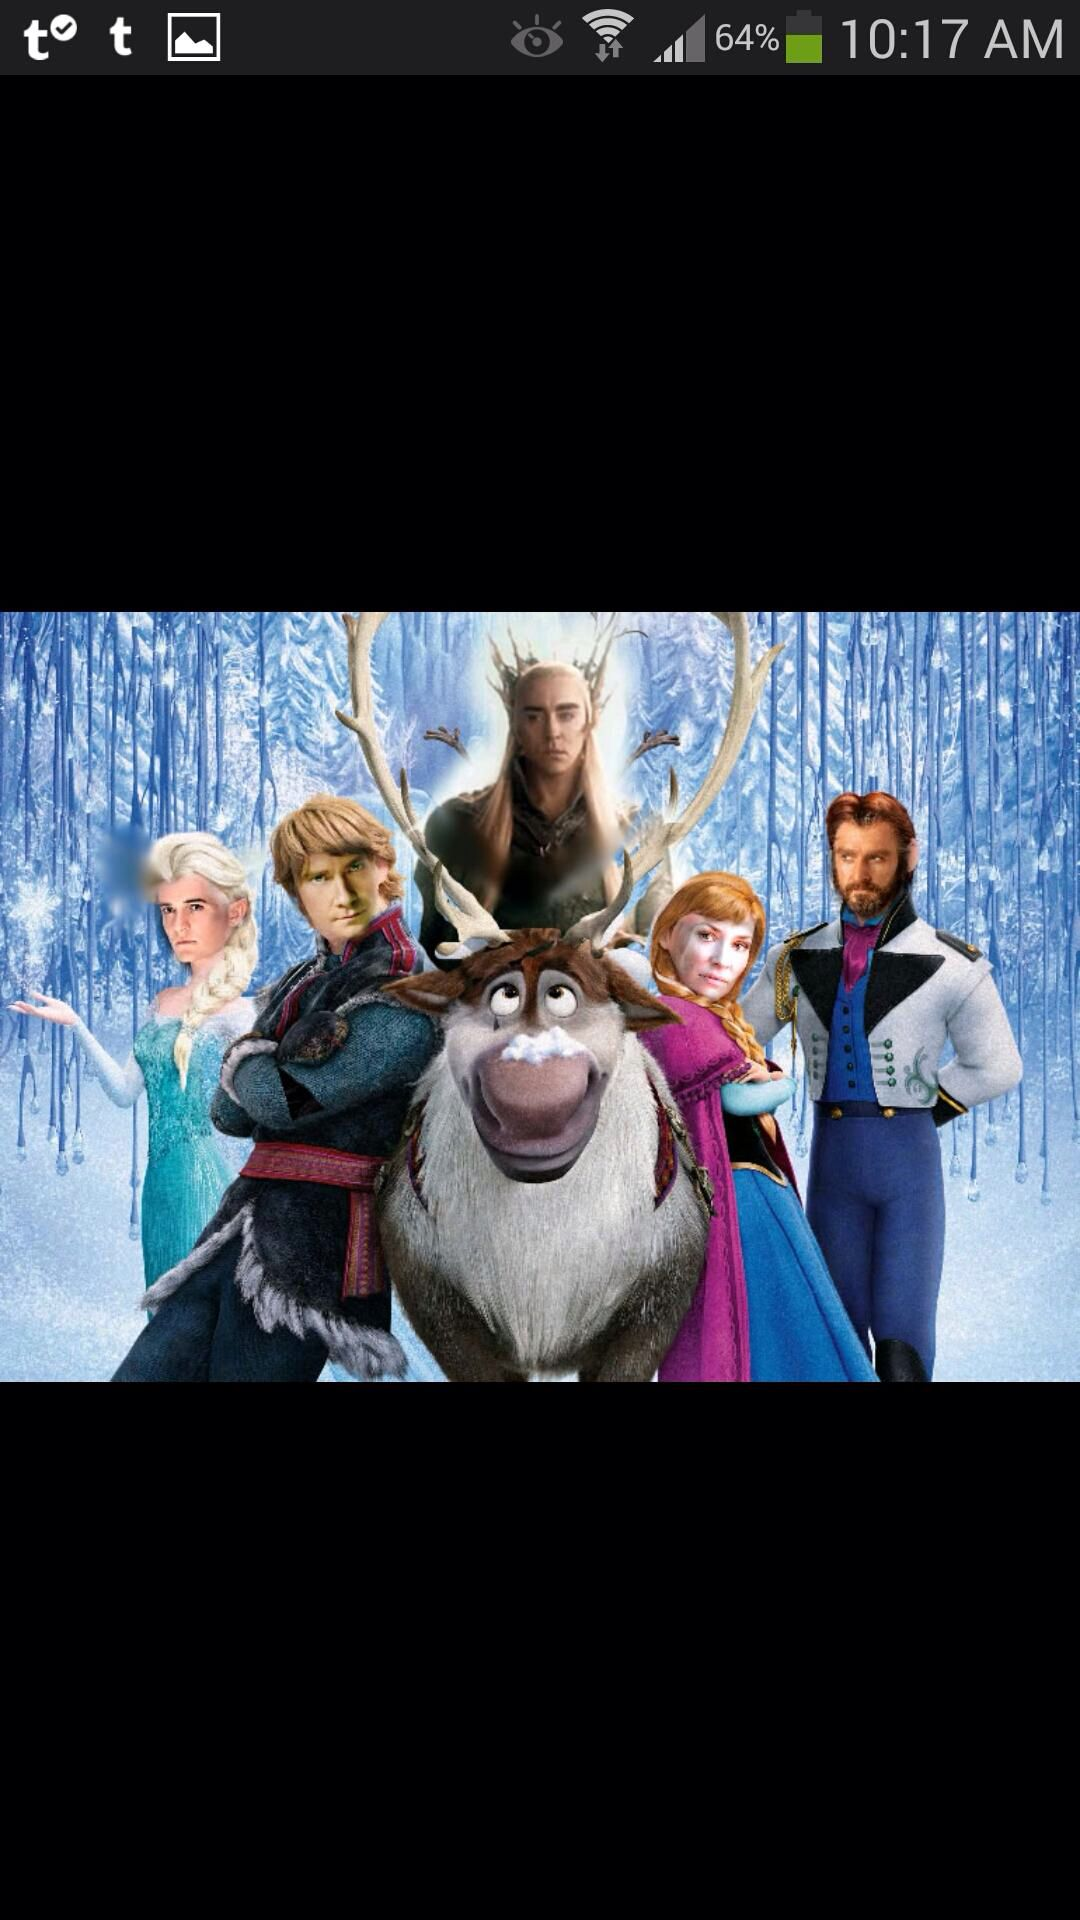 Frozen meets the hobbit. This is genius! I died at Legolas////// Thorin is NOT Hans!!! More like Azog....